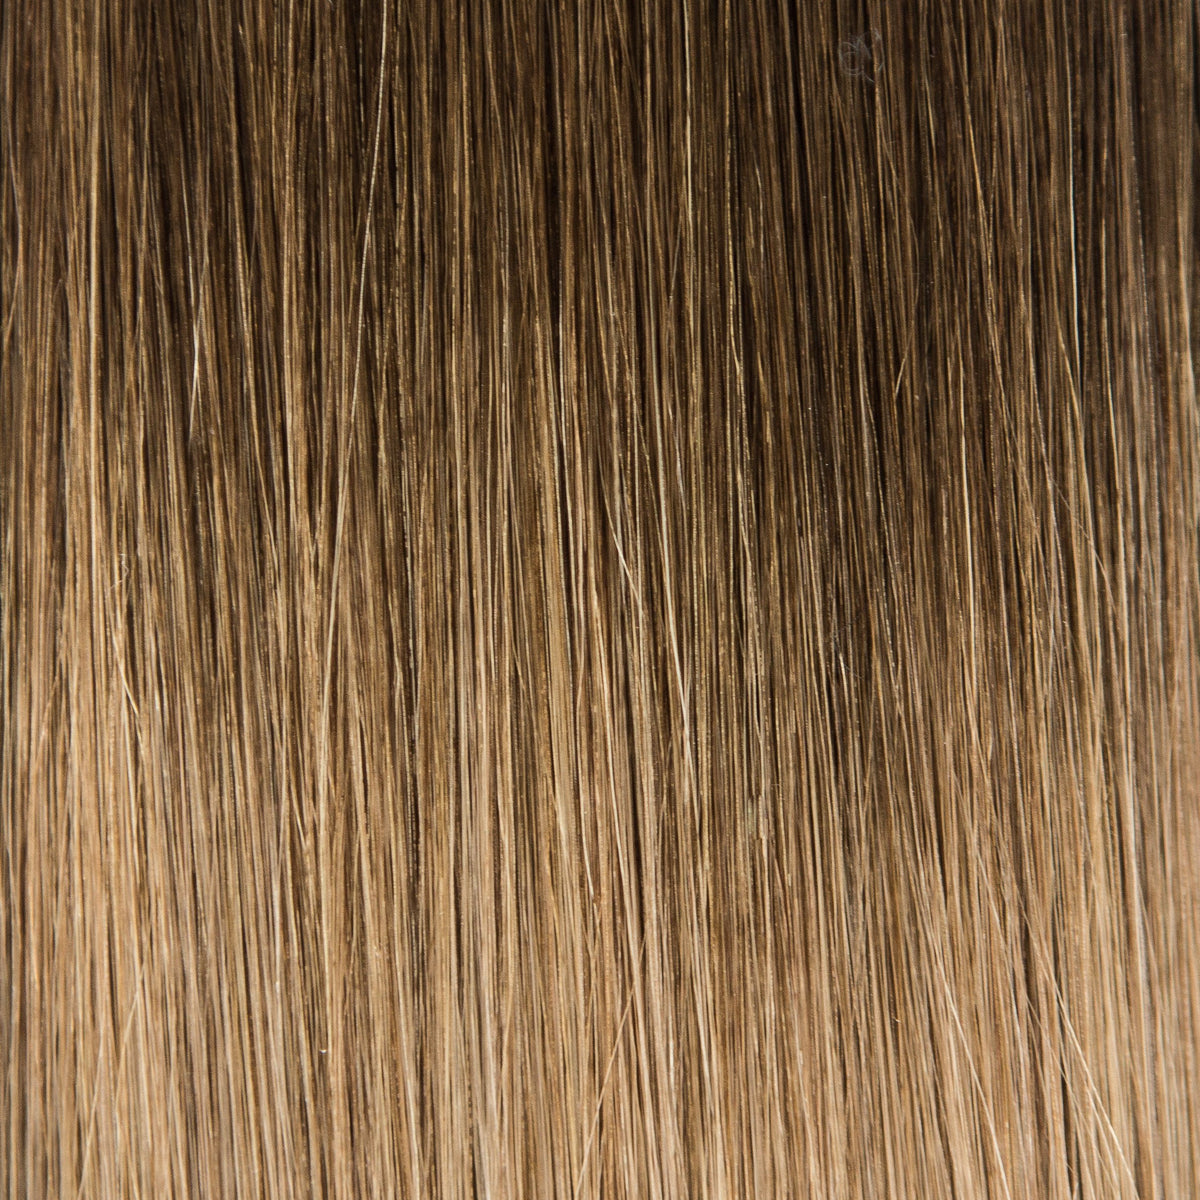 Laced Hair Hand Tied Weft Extensions Ombré #3/8 (Spiced Cider)